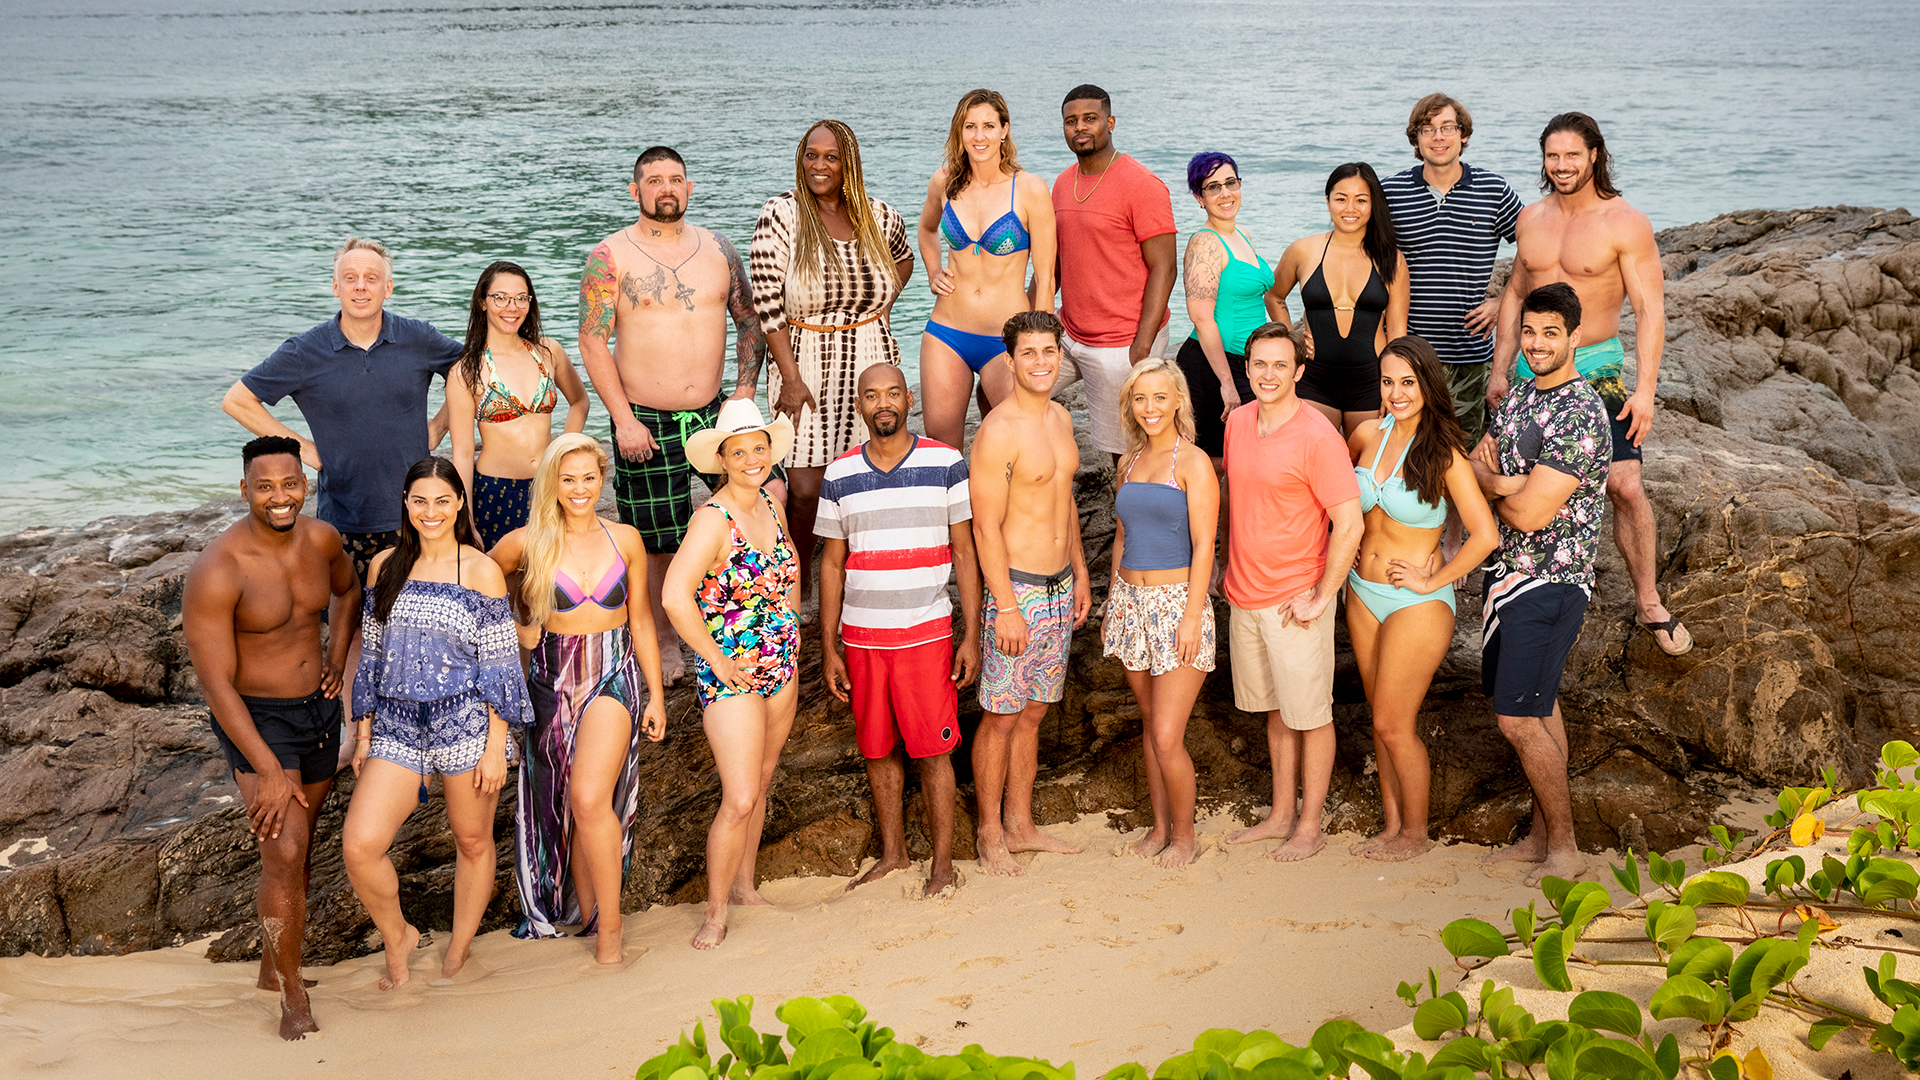 Meet the new castaways of David vs. Goliath